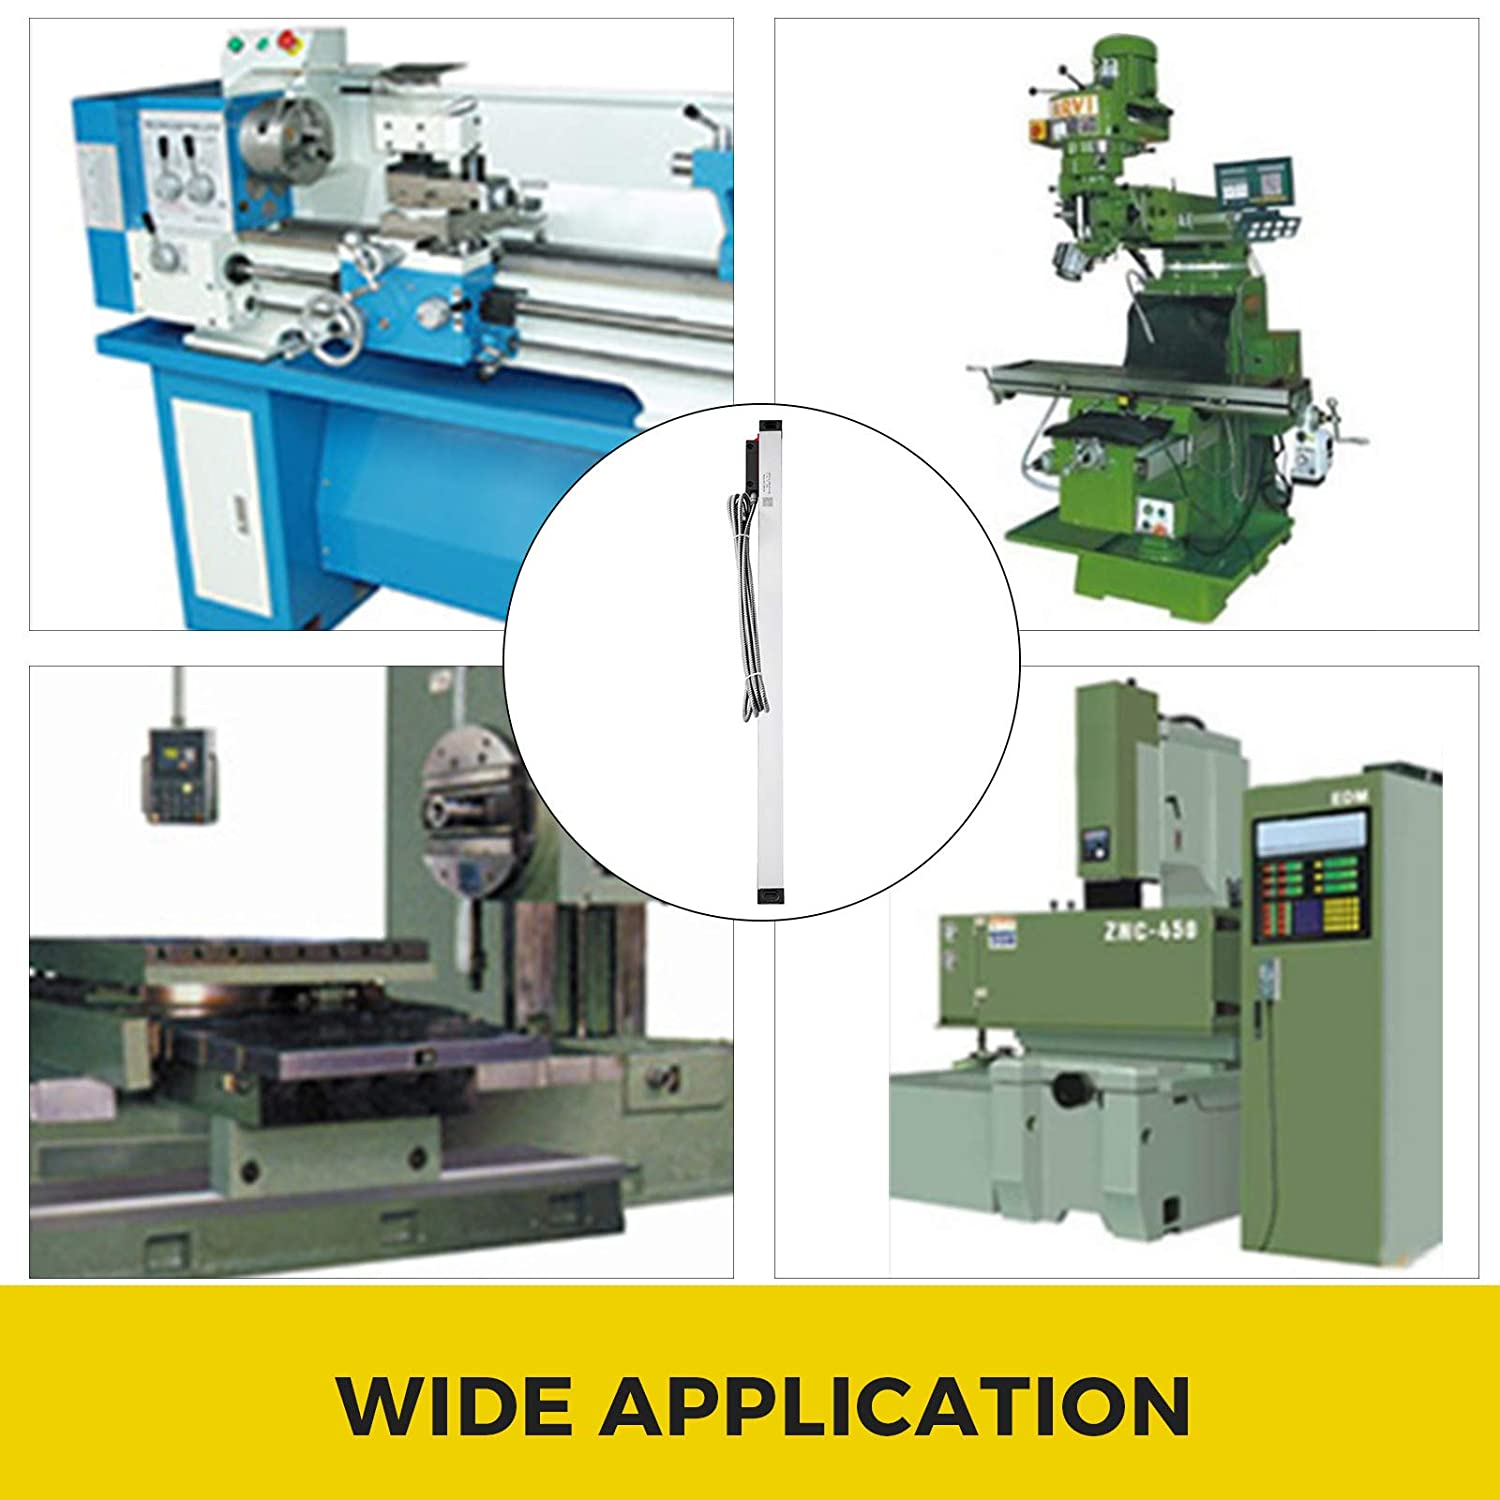 FlowerW Digital Linear Scales Travel Length 650MM Axis DRO Digital Readout Linear Scale for Lathes Grinders Milling Machines